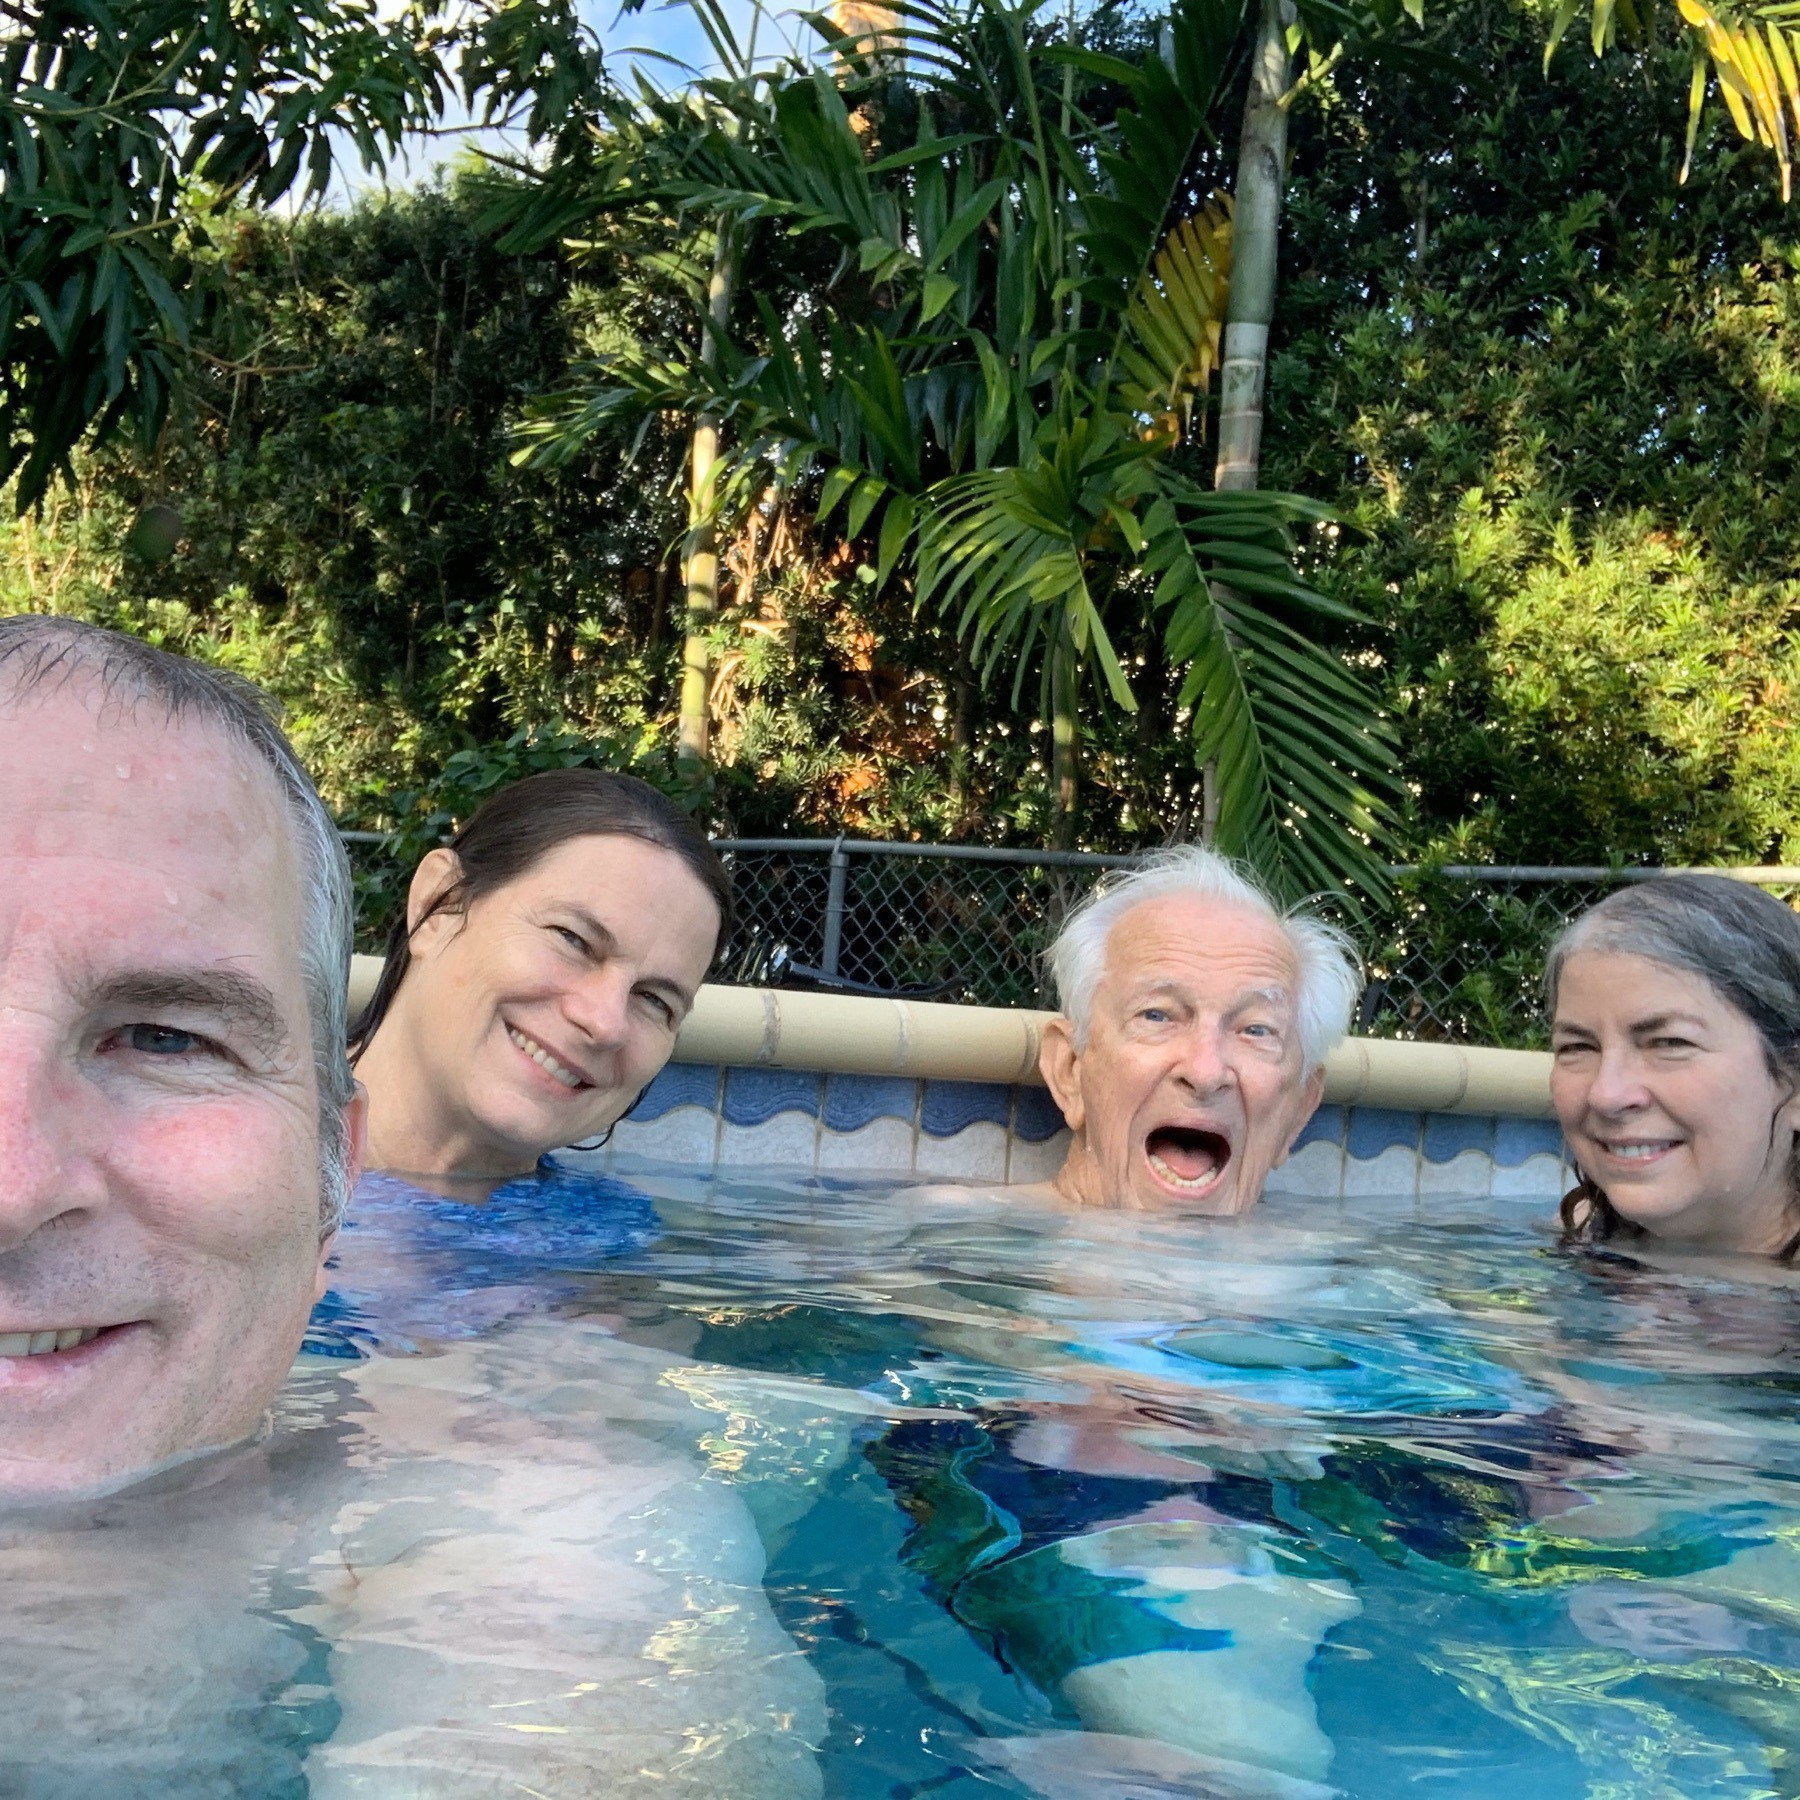 Siblings and dad in the pool